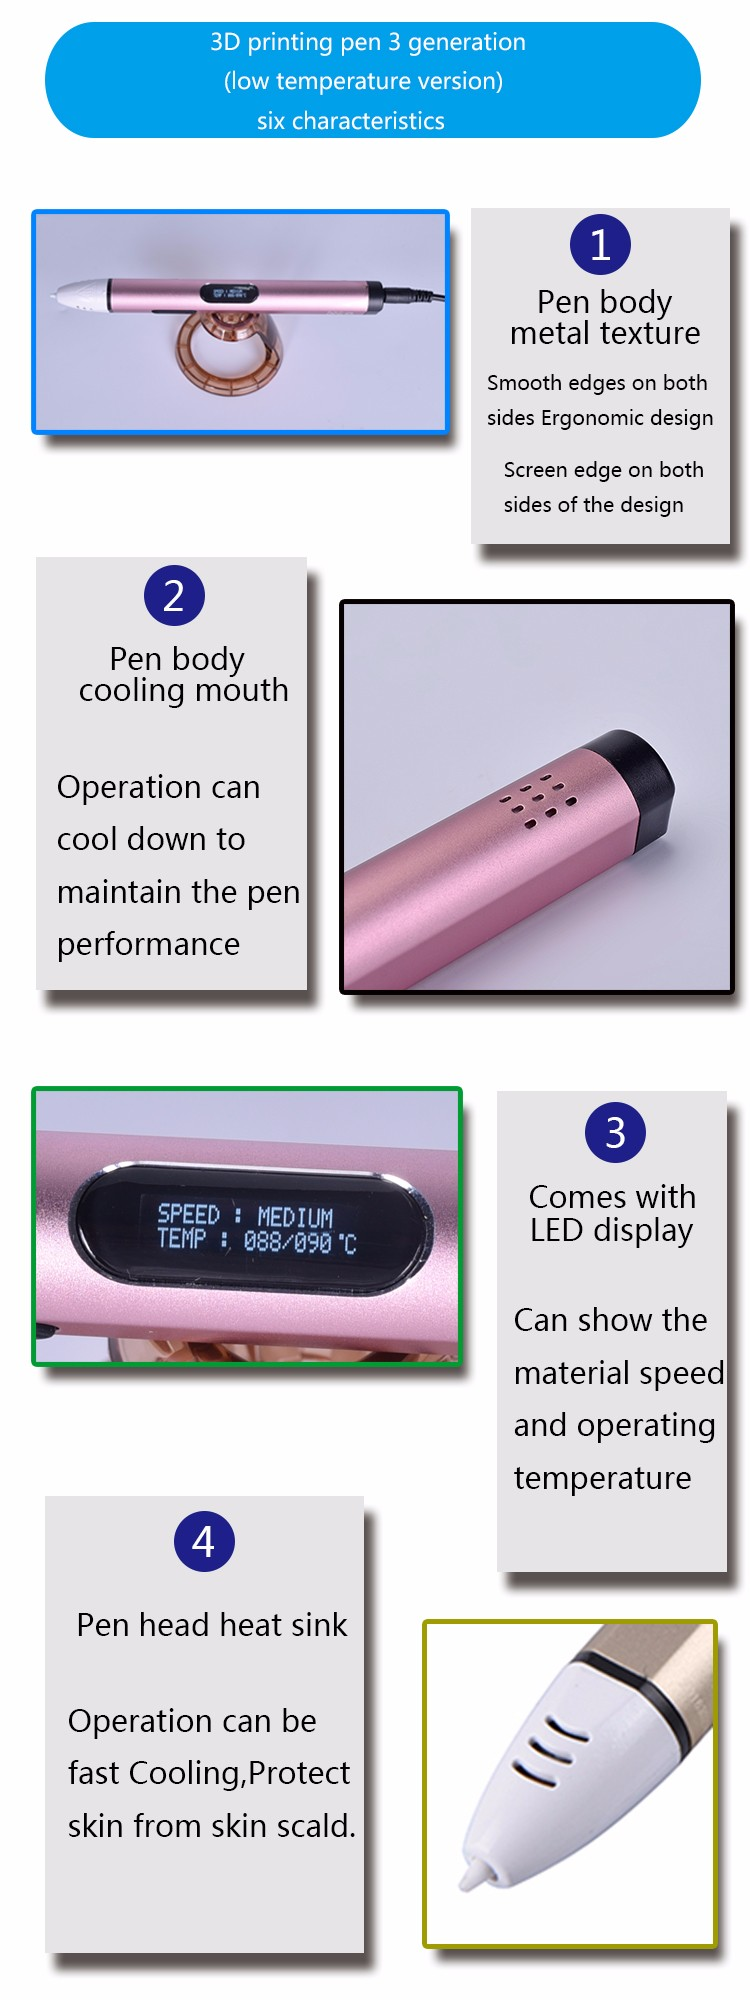 Hotsale Cheap Magic 3D Printing Pen with LCD Screen for Kids Gift Intelligent Printer DIY Pen